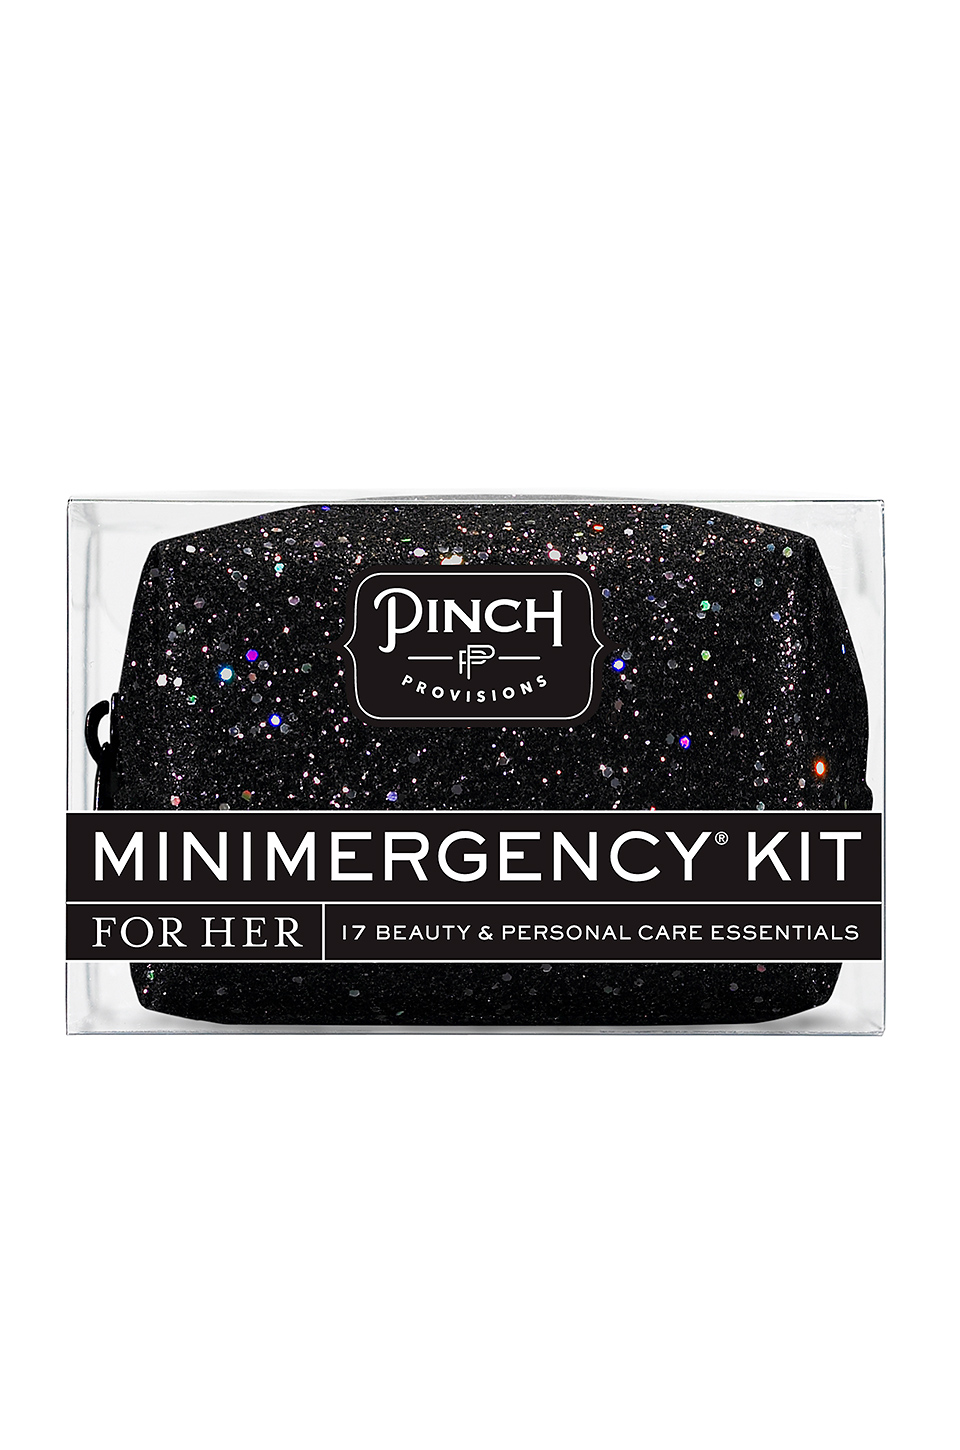 minimergency kit2.jpg